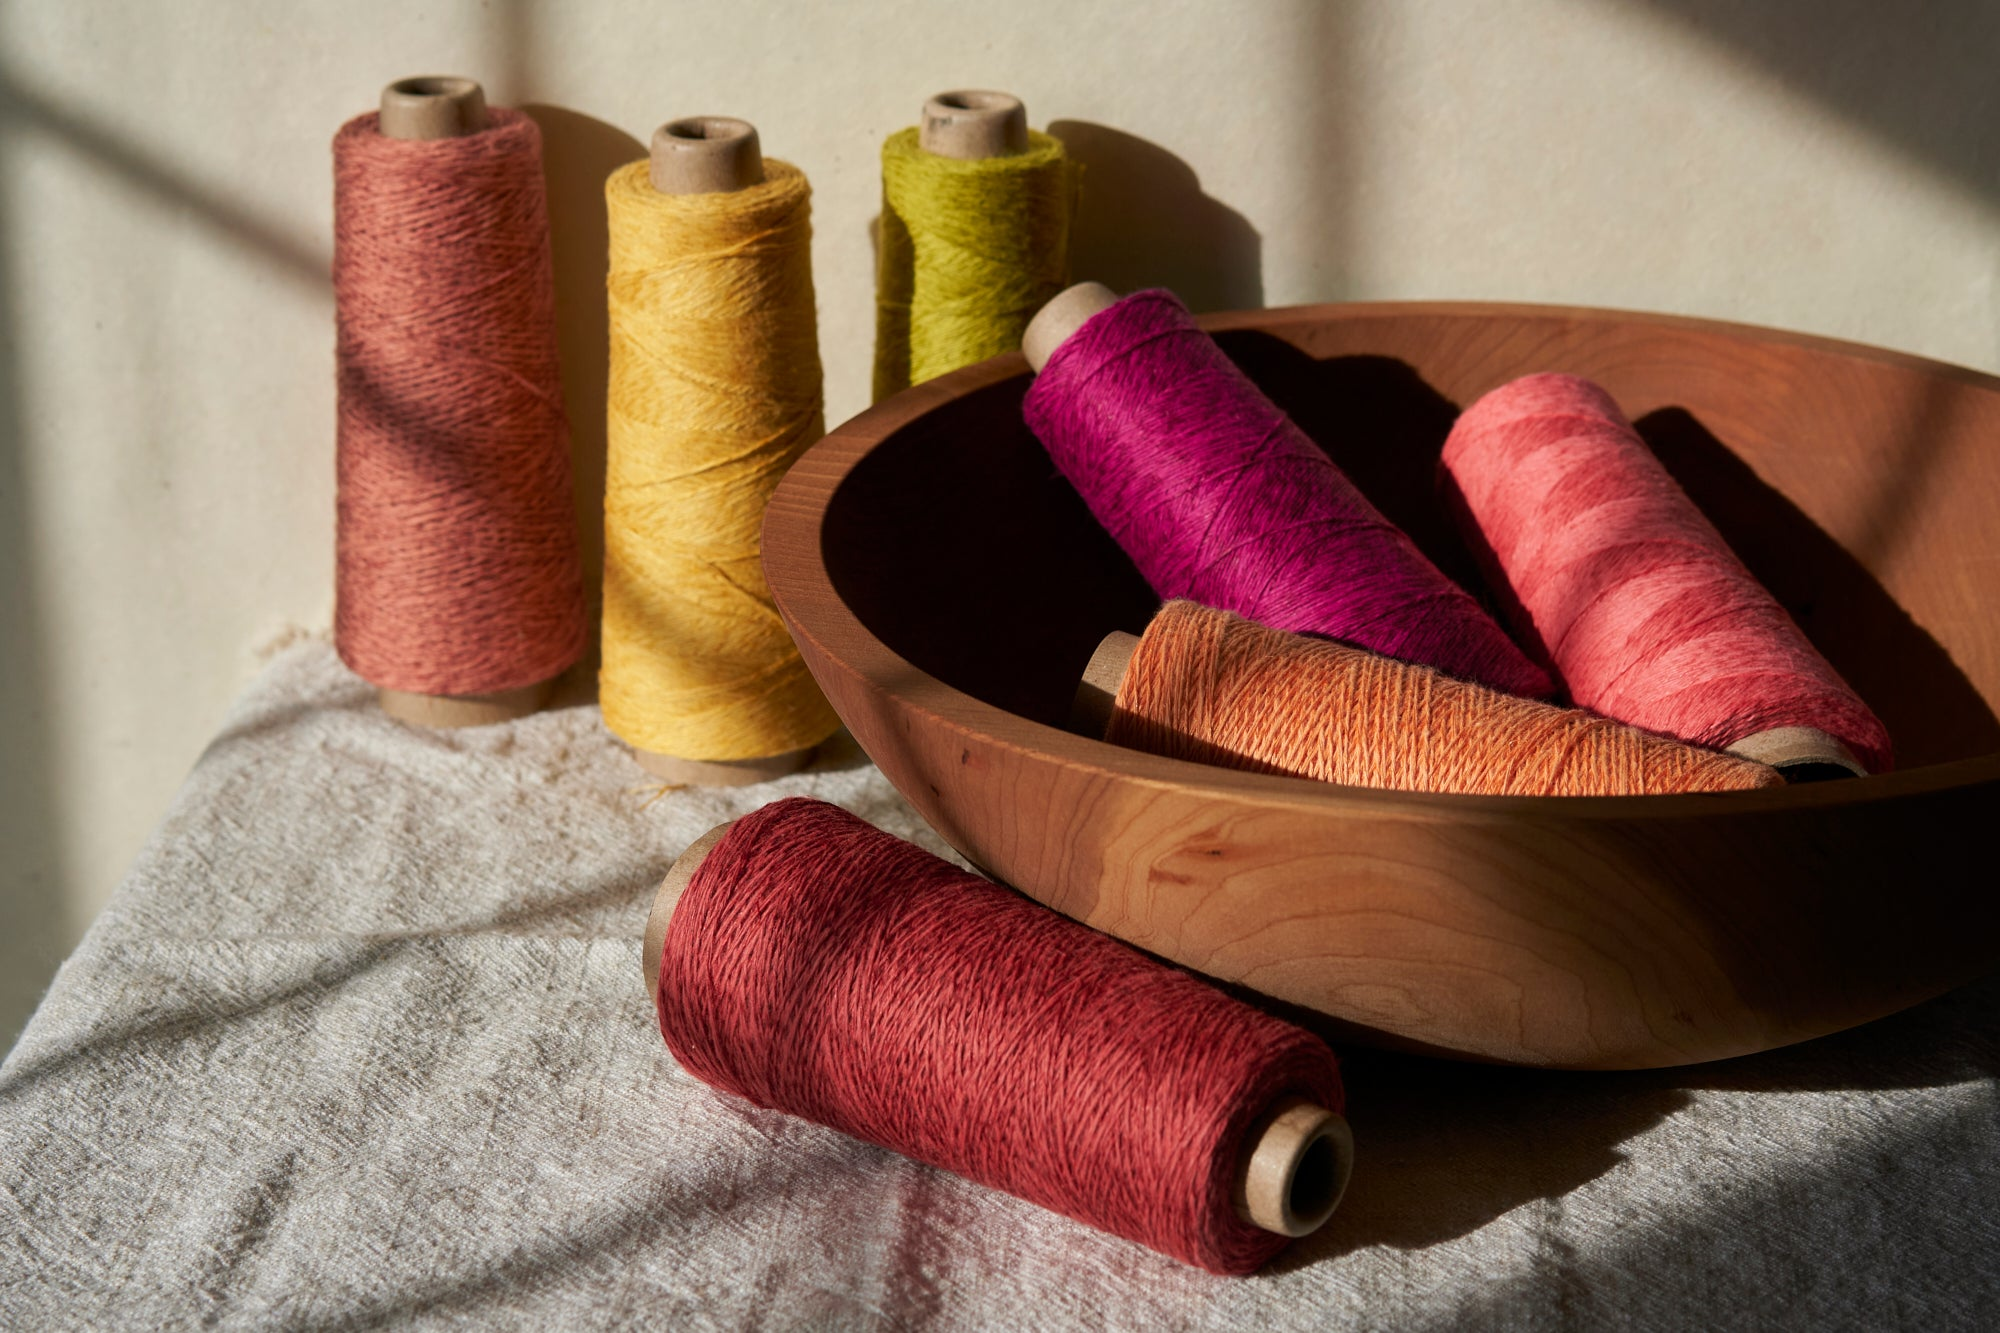 A collection of threads placed in a wooden bowl backdropped by more threads.